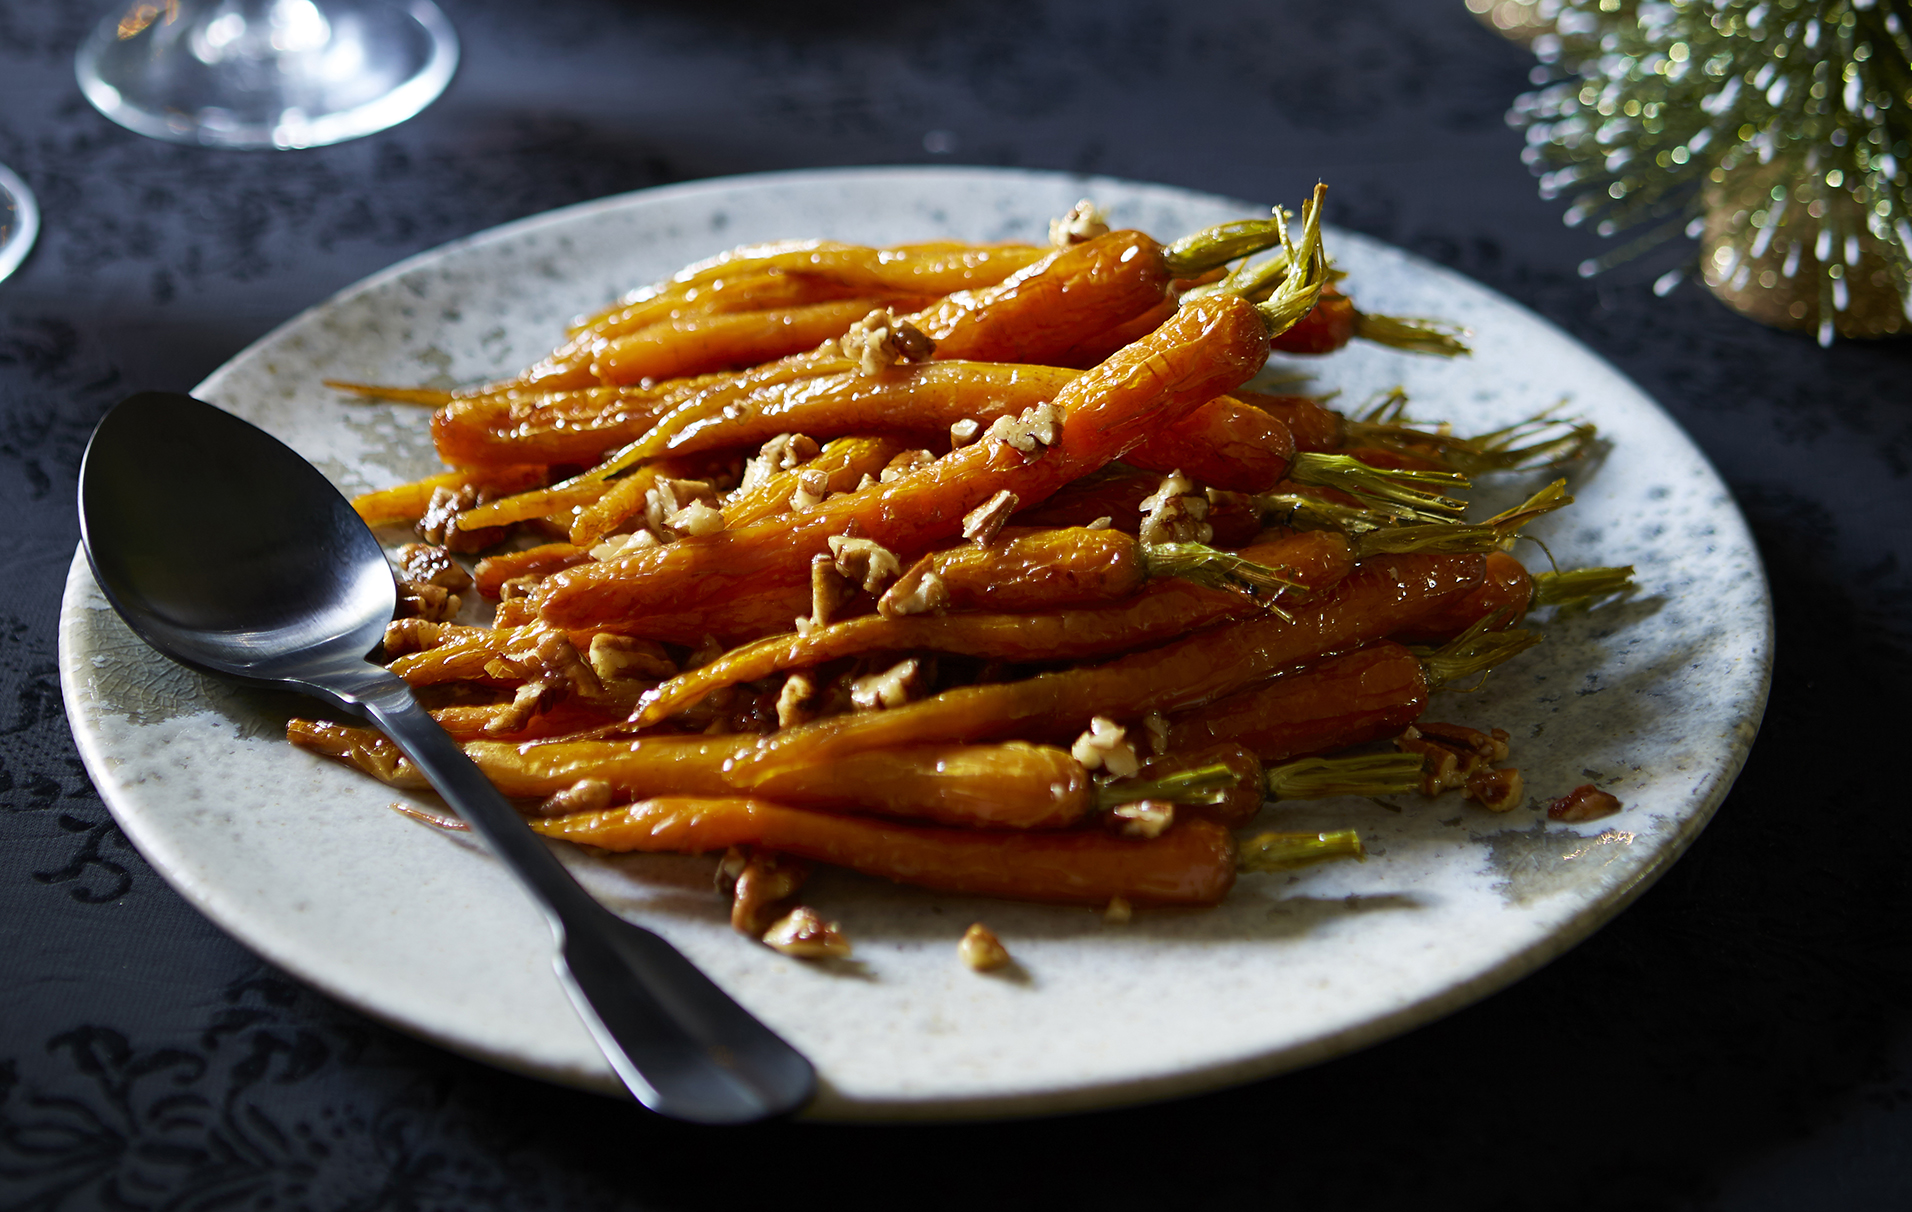 Liven up your Christmas with our tasty maple pecan roasted carrots